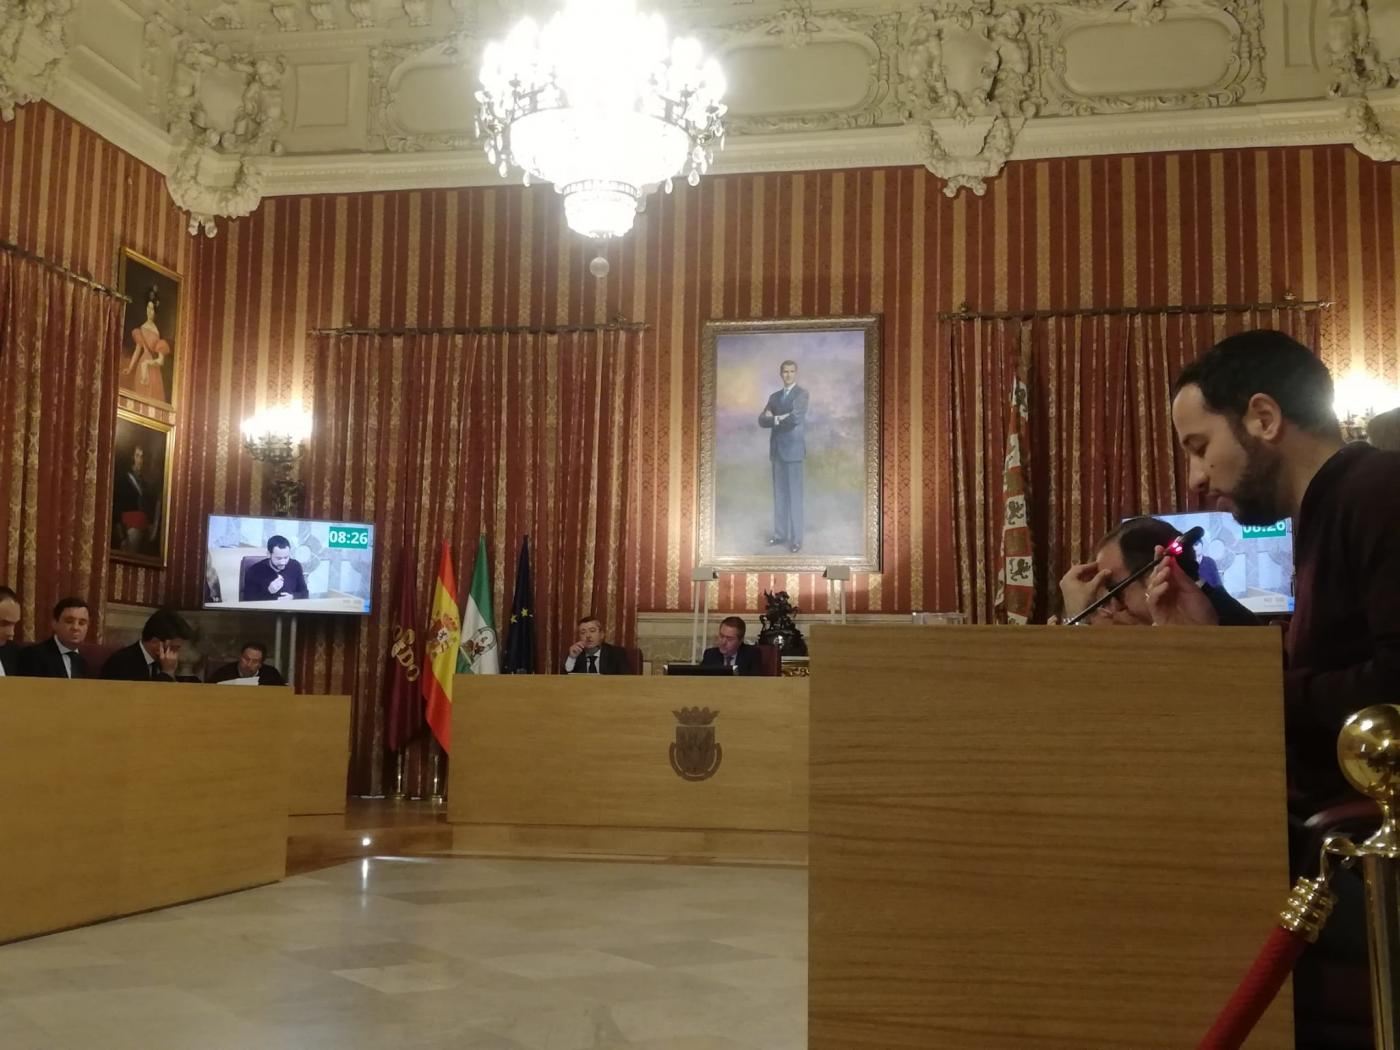 Pleno municipal de Sevilla. VS